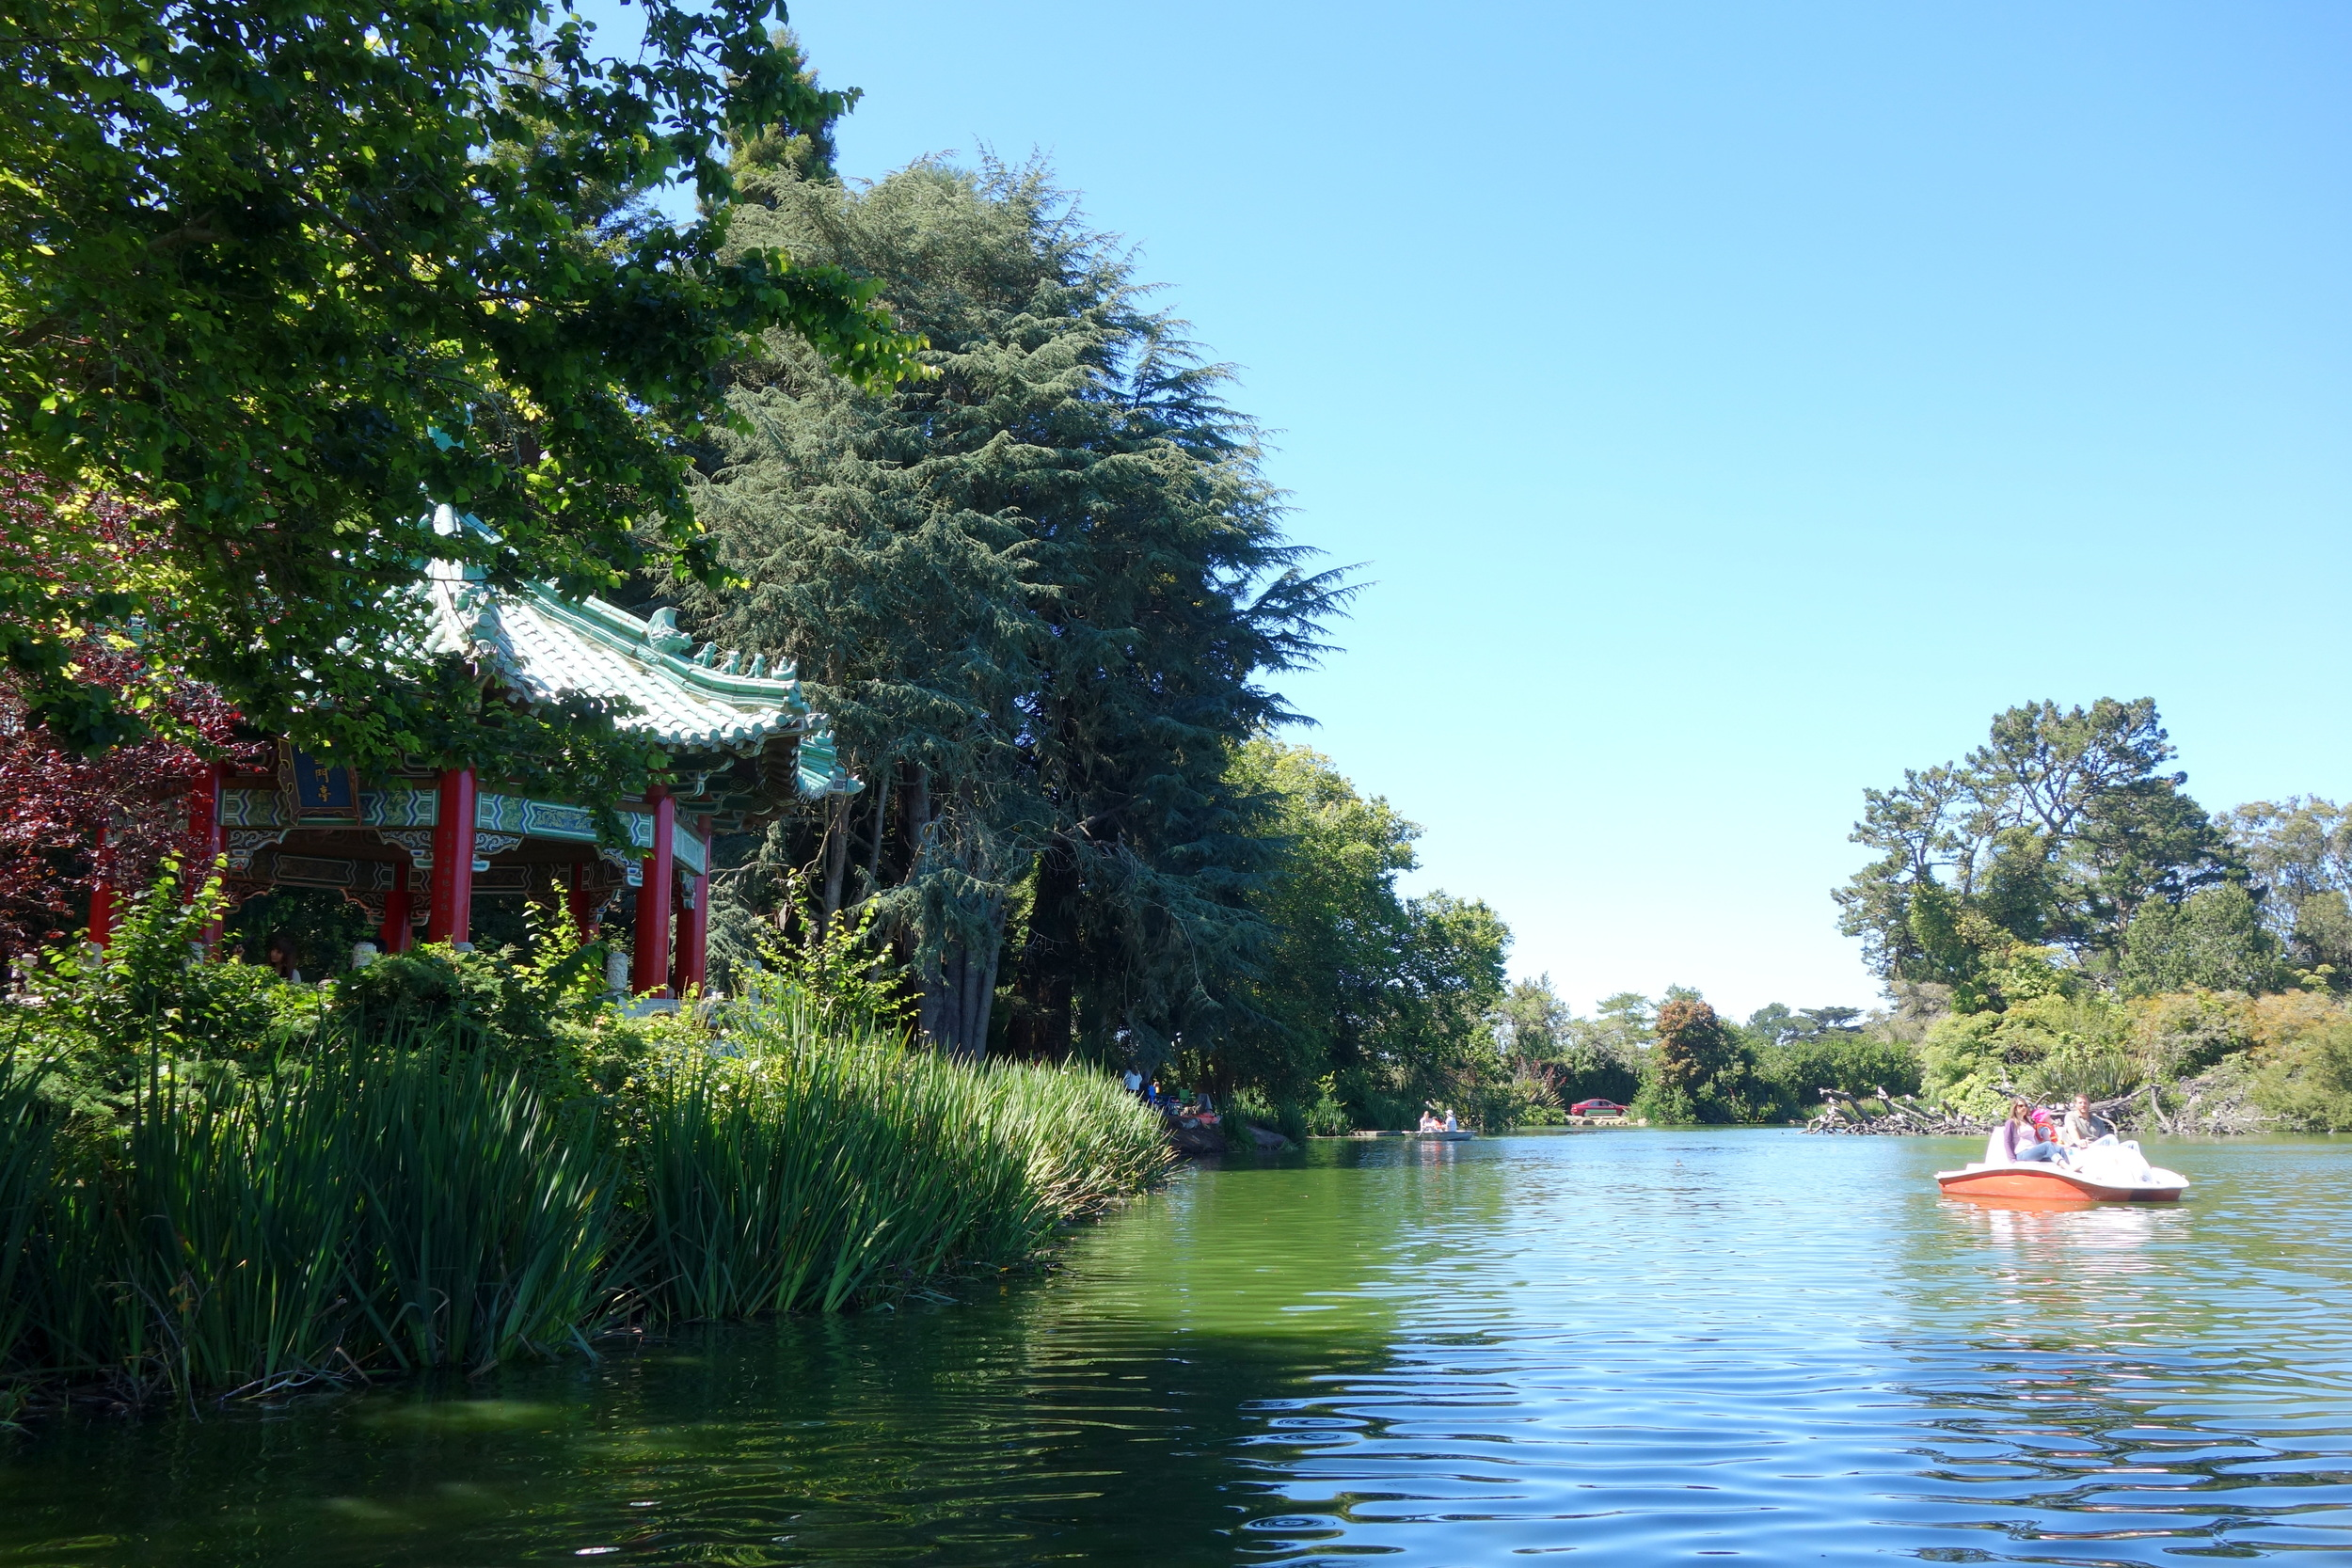 Residents can rent paddleboats and bikes at the tranquil Stowe Lake in Golden Gate Park.